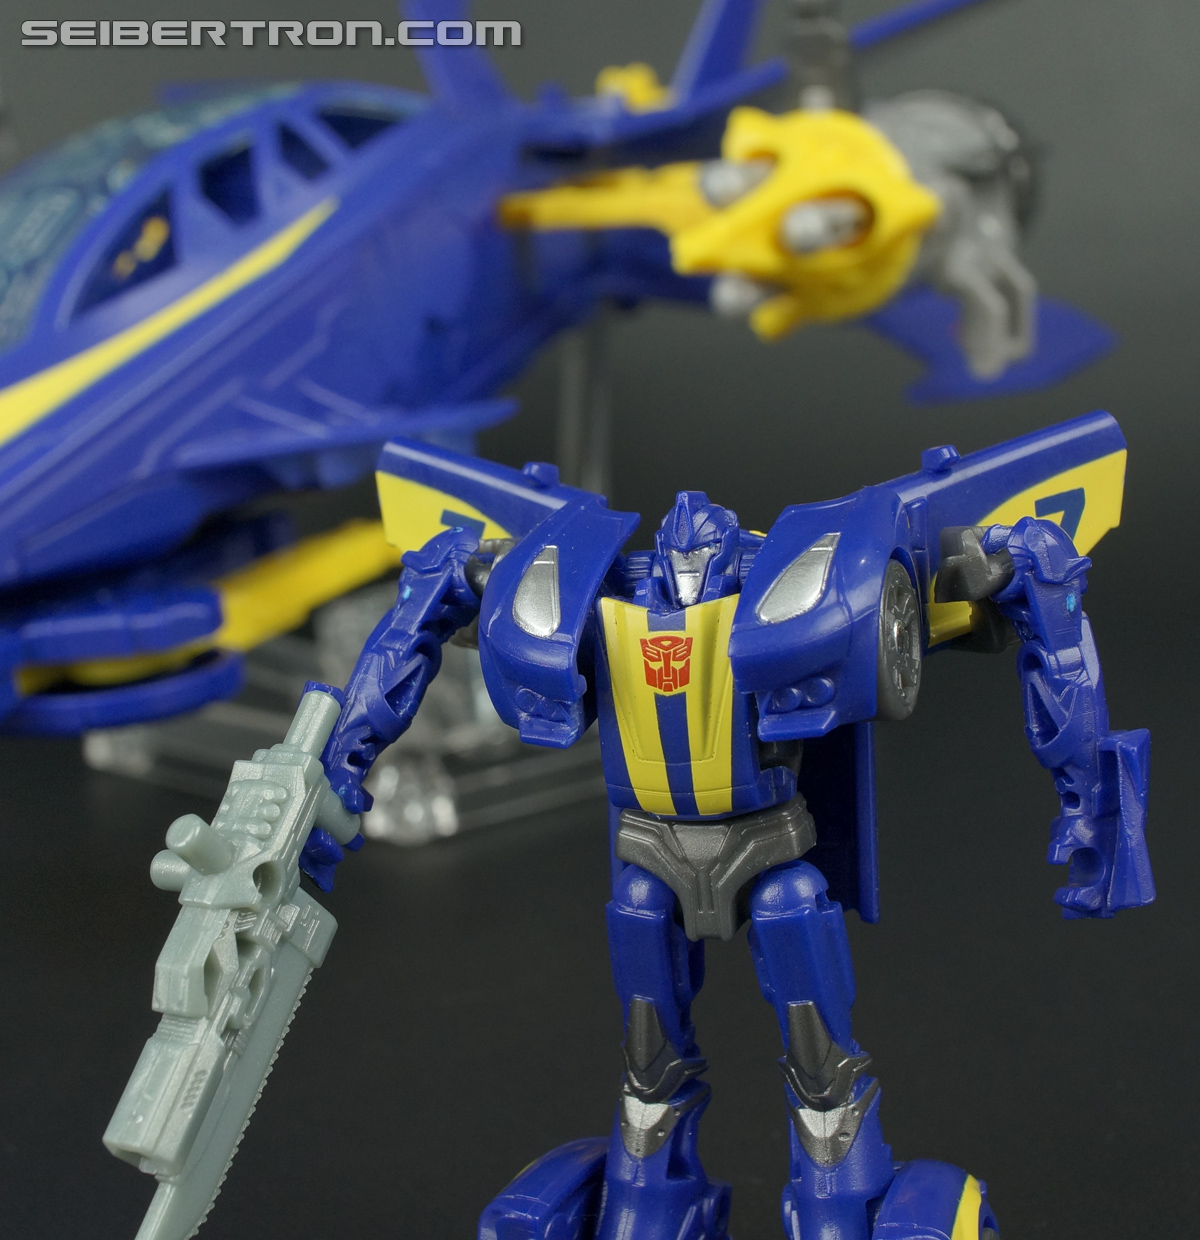 Transformers Prime Beast Hunters Cyberverse Sky Claw (Image #66 of 83)